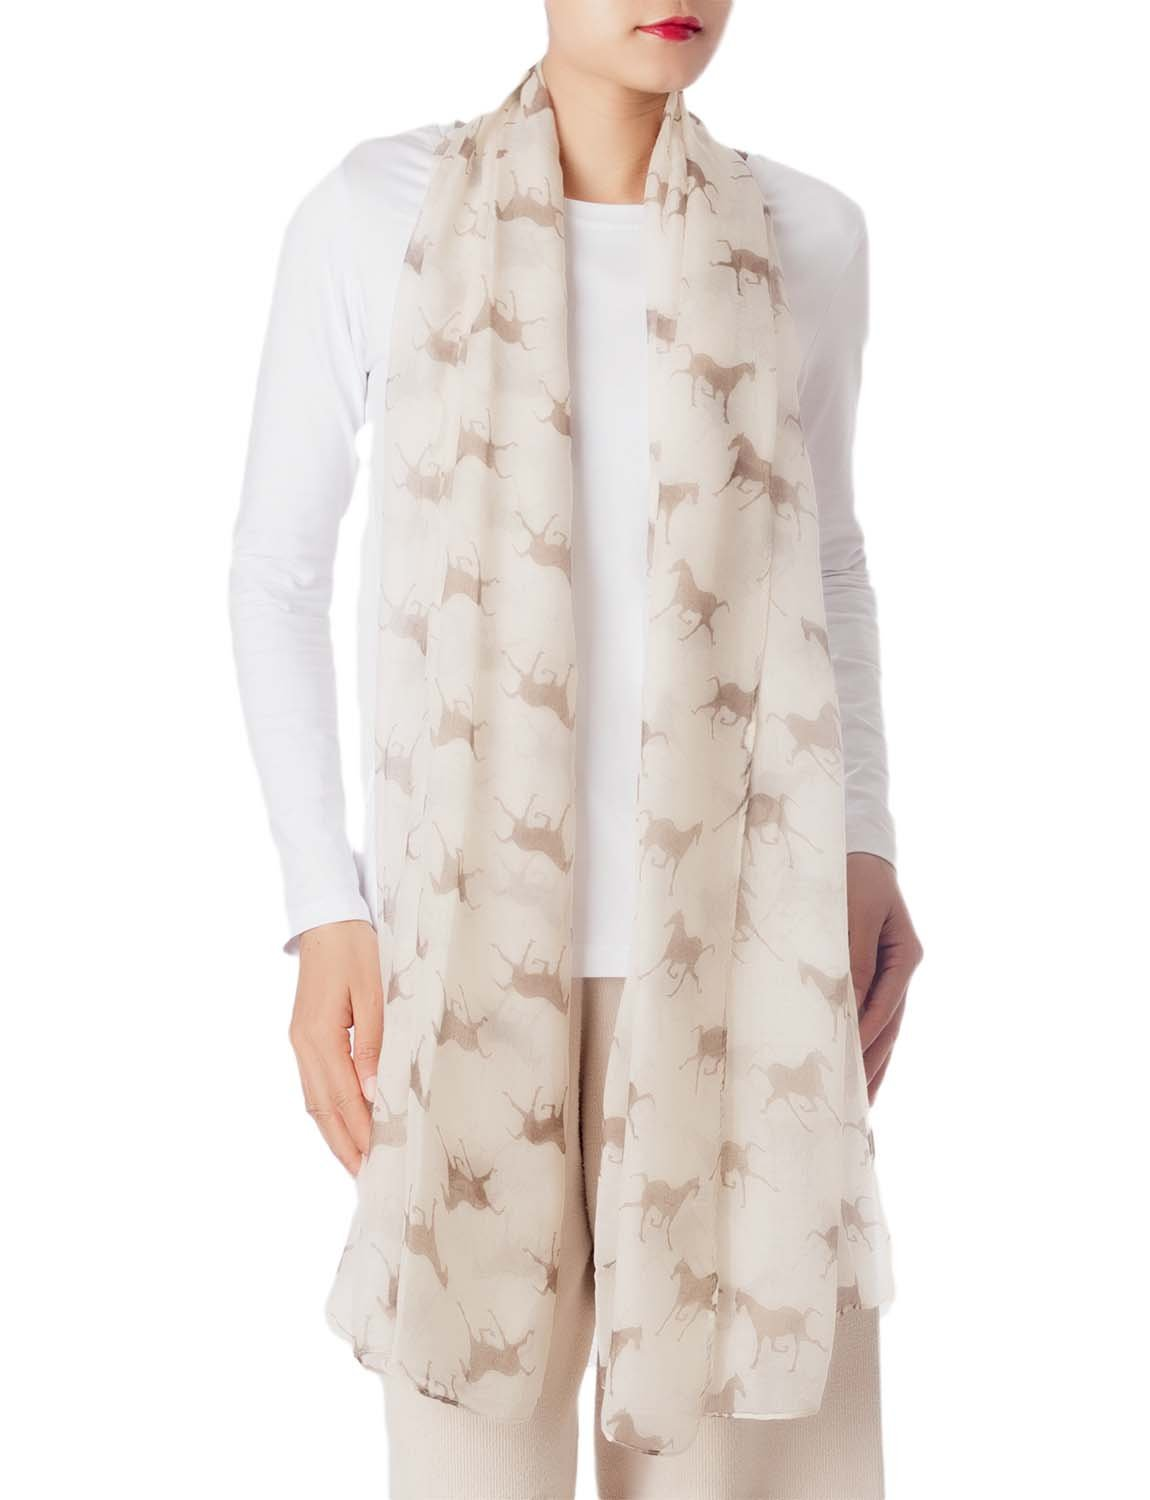 Women's Black Horse Pony Printing Gorgeous Lightweight Long Fashion Scarf, Size: One Size, Cream